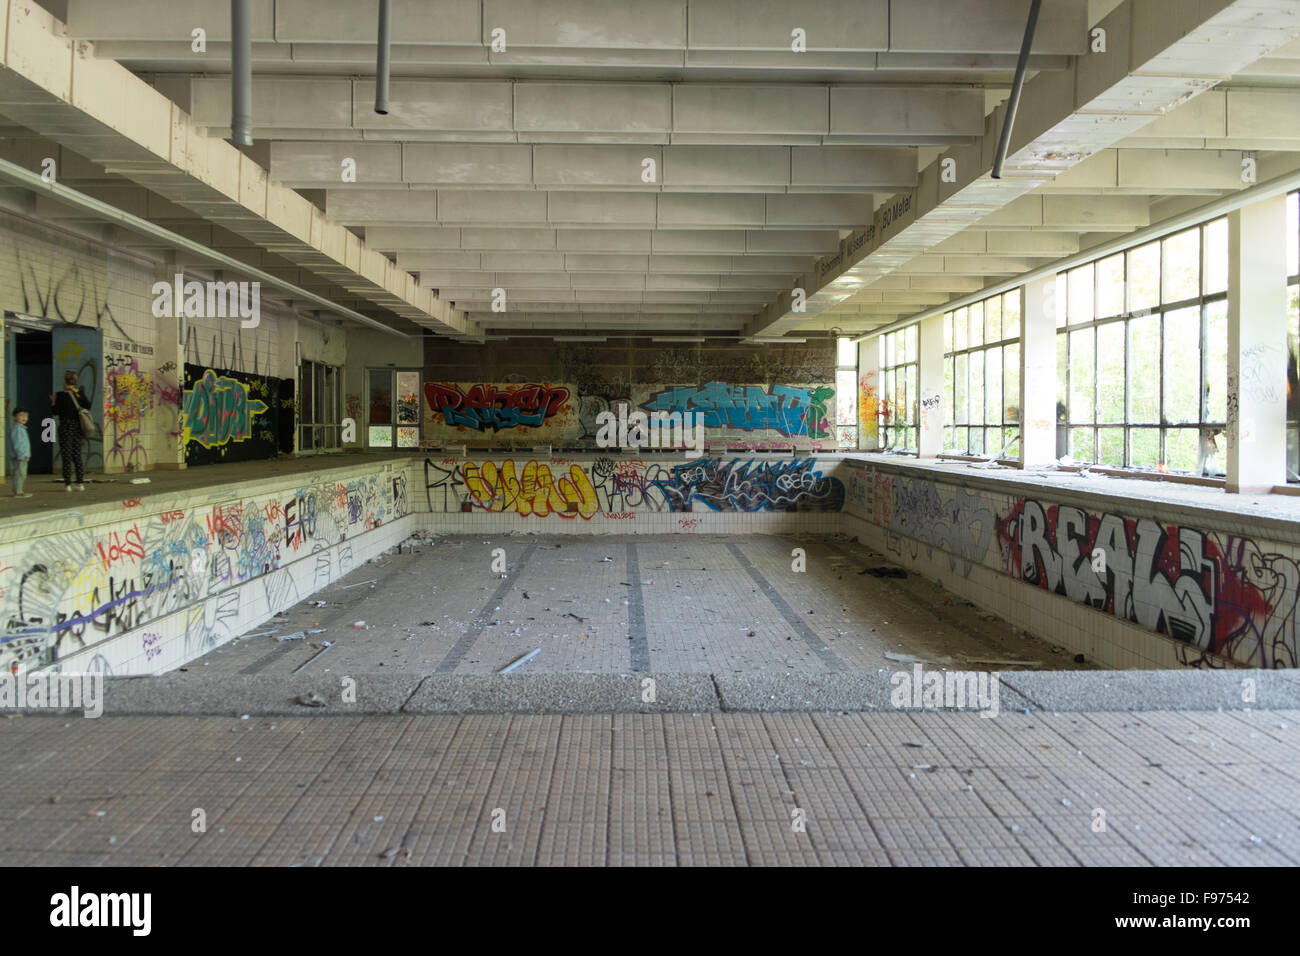 Swimming Pool Graffiti High Resolution Stock Photography And Images Alamy